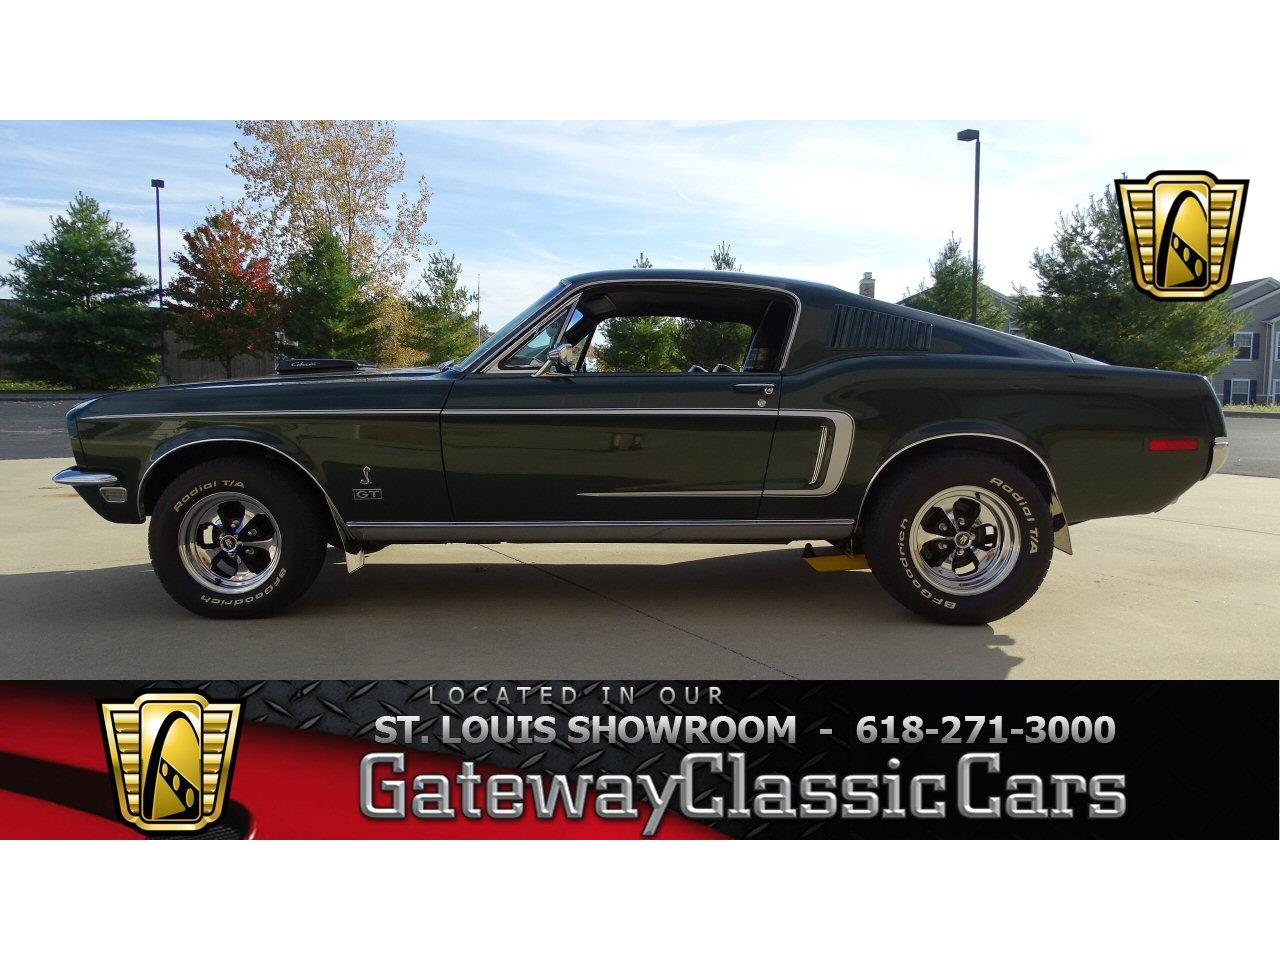 Large Picture of 1968 Ford Mustang located in O'Fallon Illinois - $74,000.00 Offered by Gateway Classic Cars - St. Louis - KDWO